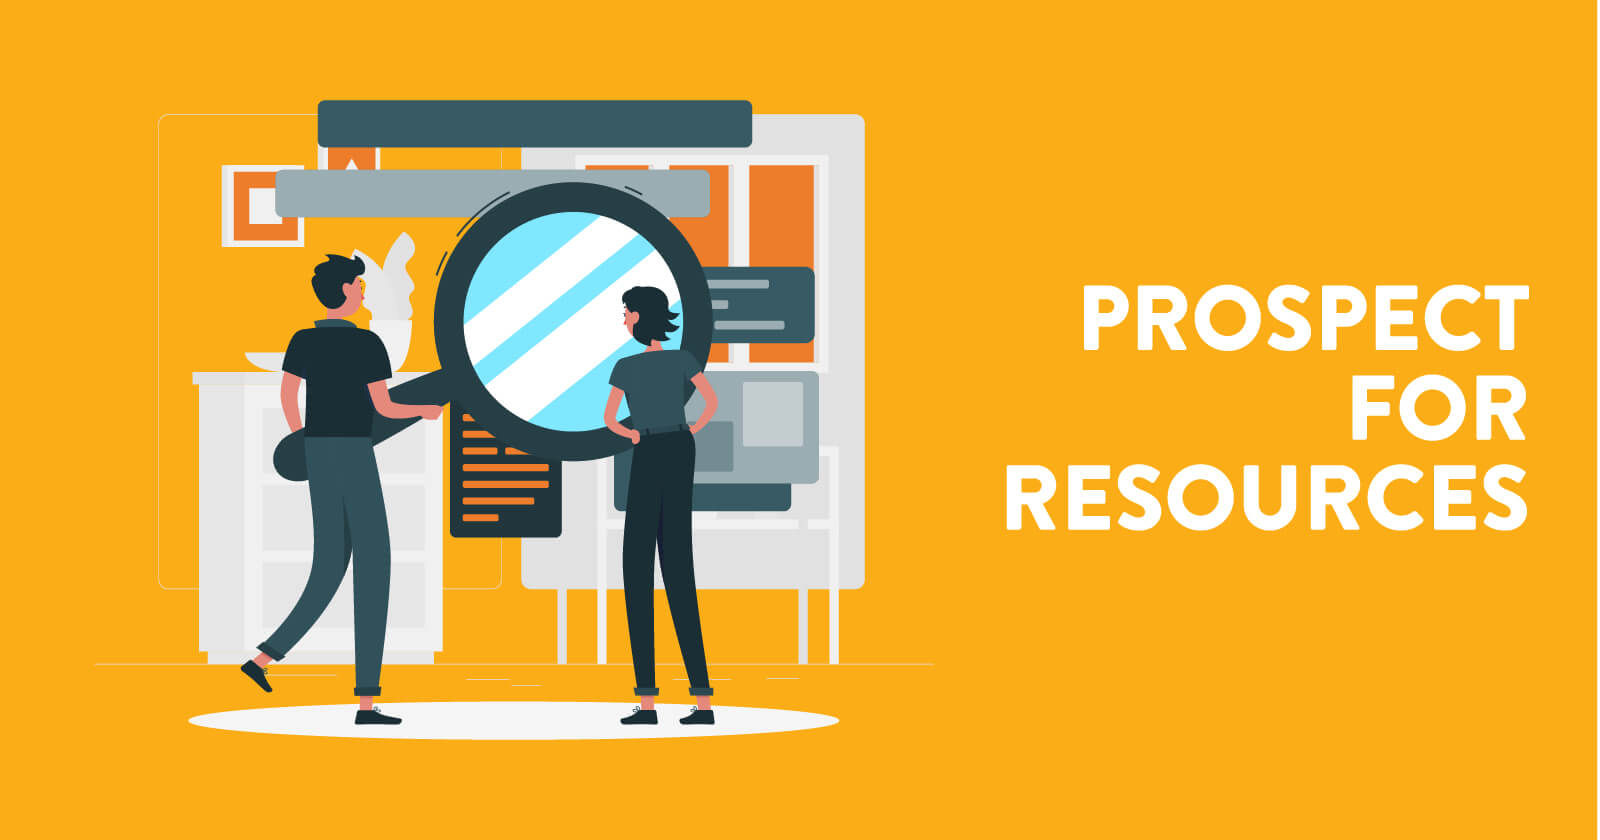 Prospect for resources